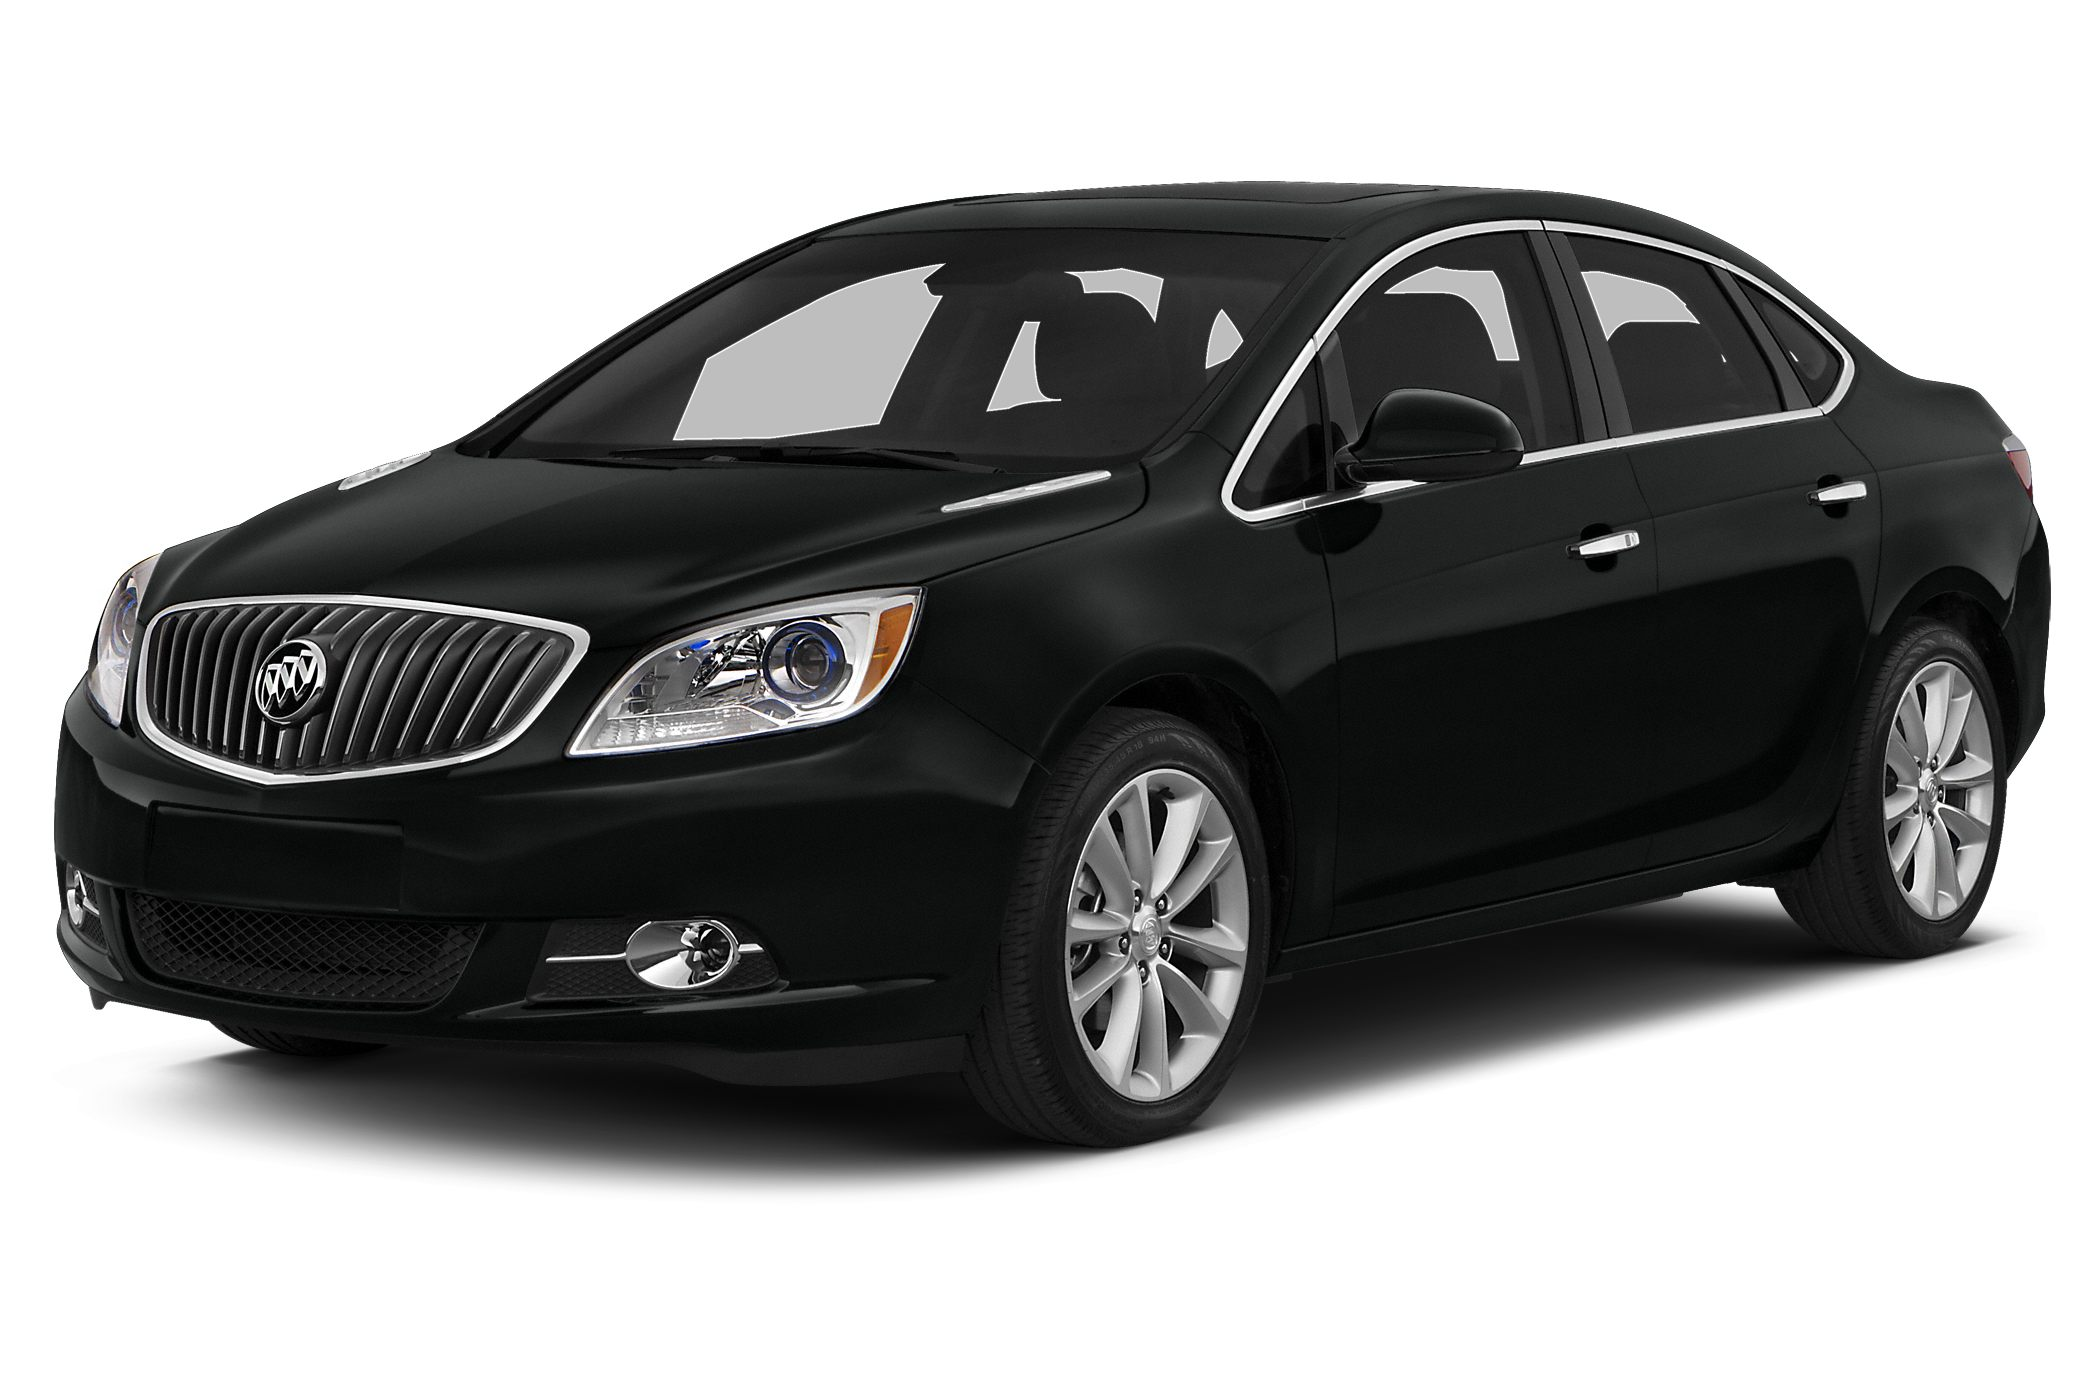 2014 Buick Verano Convenience Sedan for sale in Boerne for $27,185 with 0 miles.